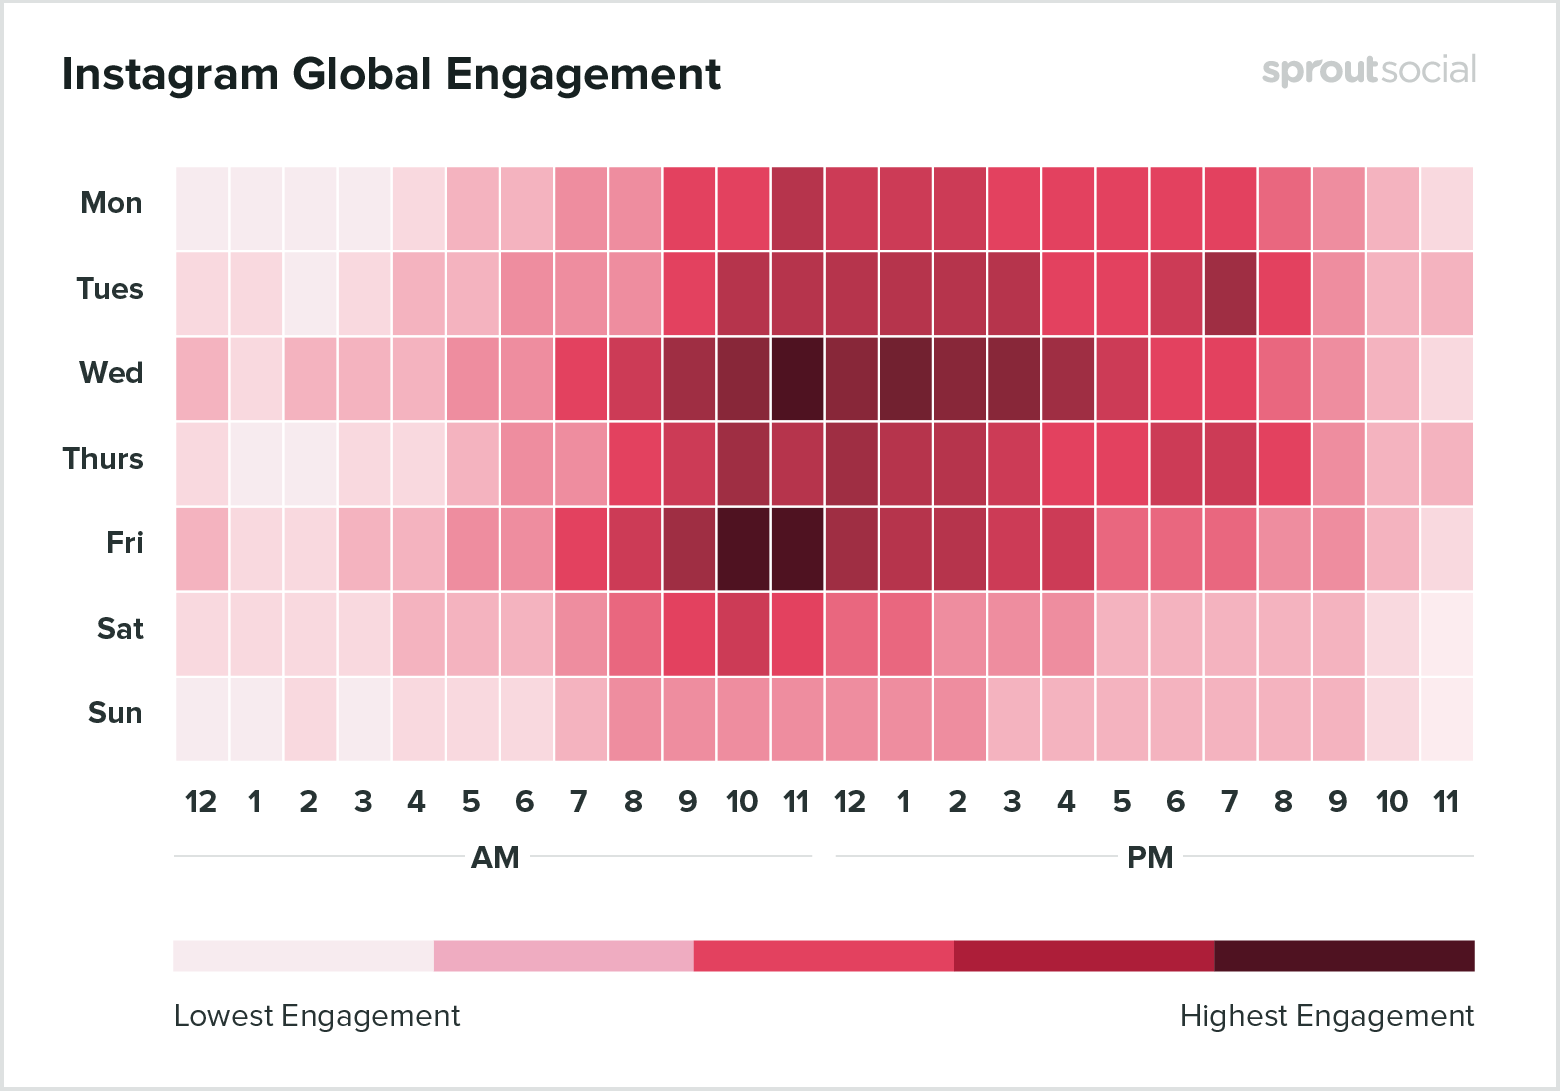 What Are the Best Times to Post Content on Instagram for Optimal Engagement?